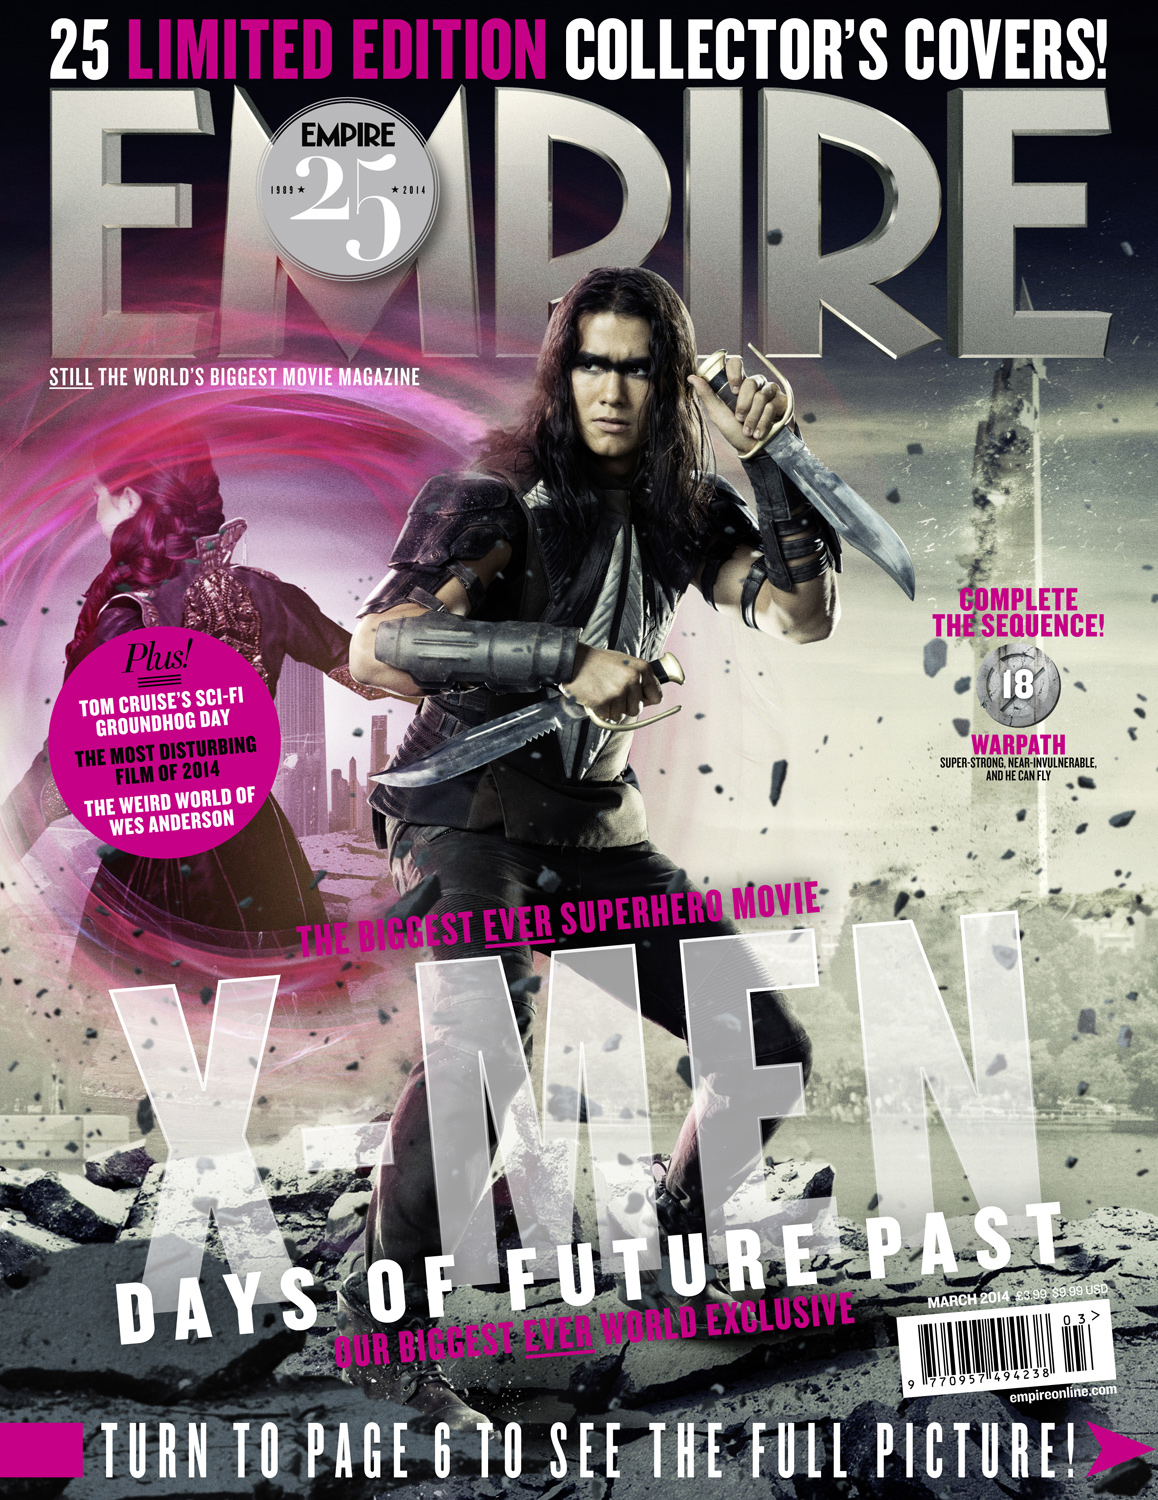 Empire - XDOFP Cover - 018 - Warpath